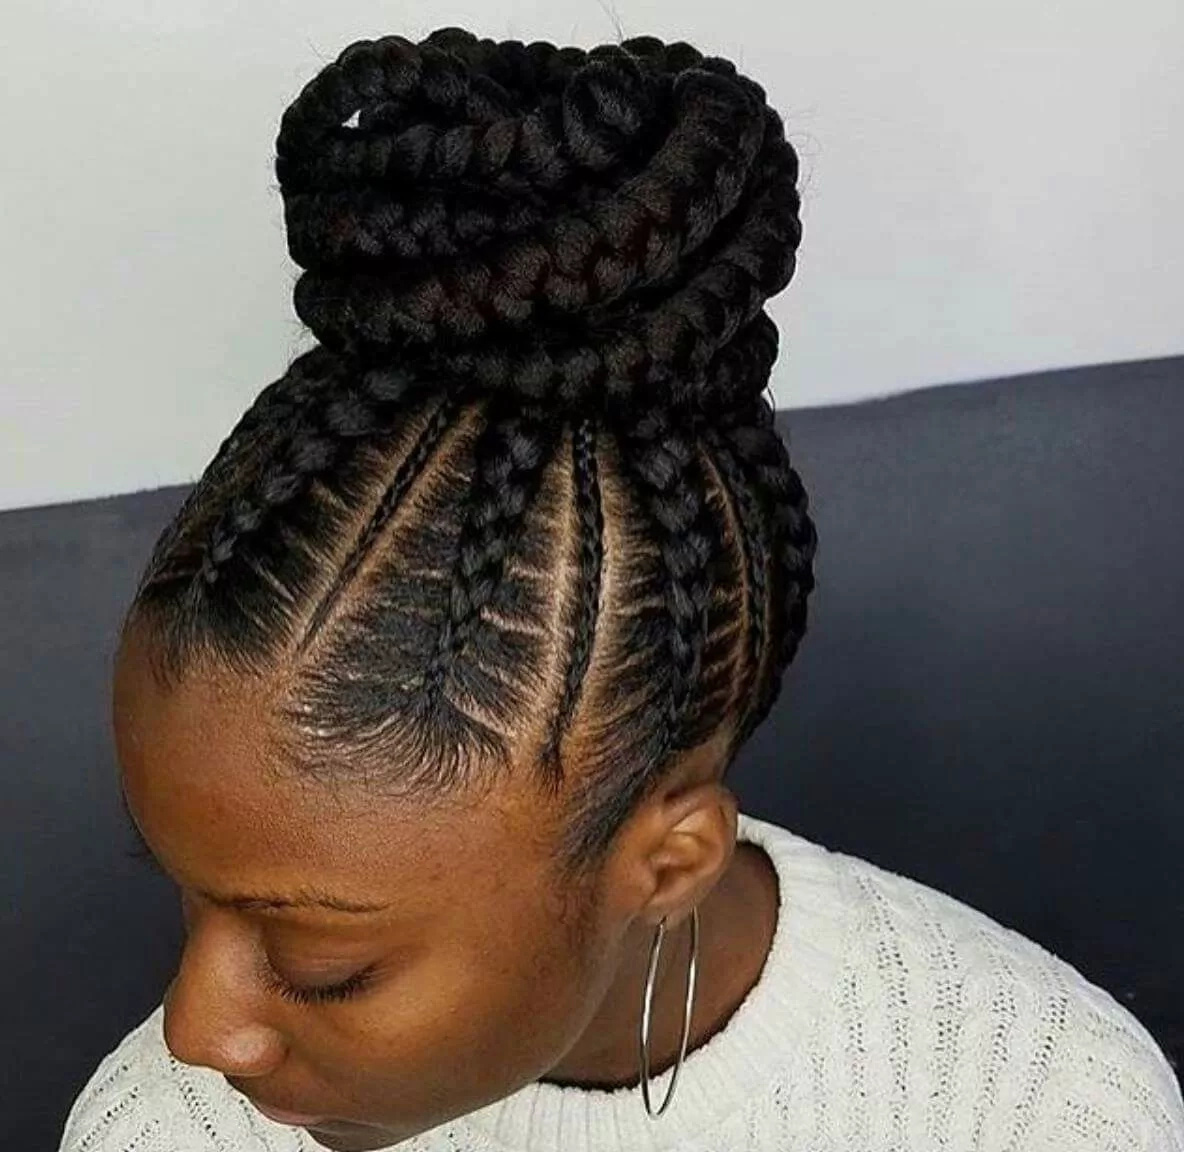 Braid Hairstyles: Top 10 African Braiding Hairstyles For Ladies (PHOTOS